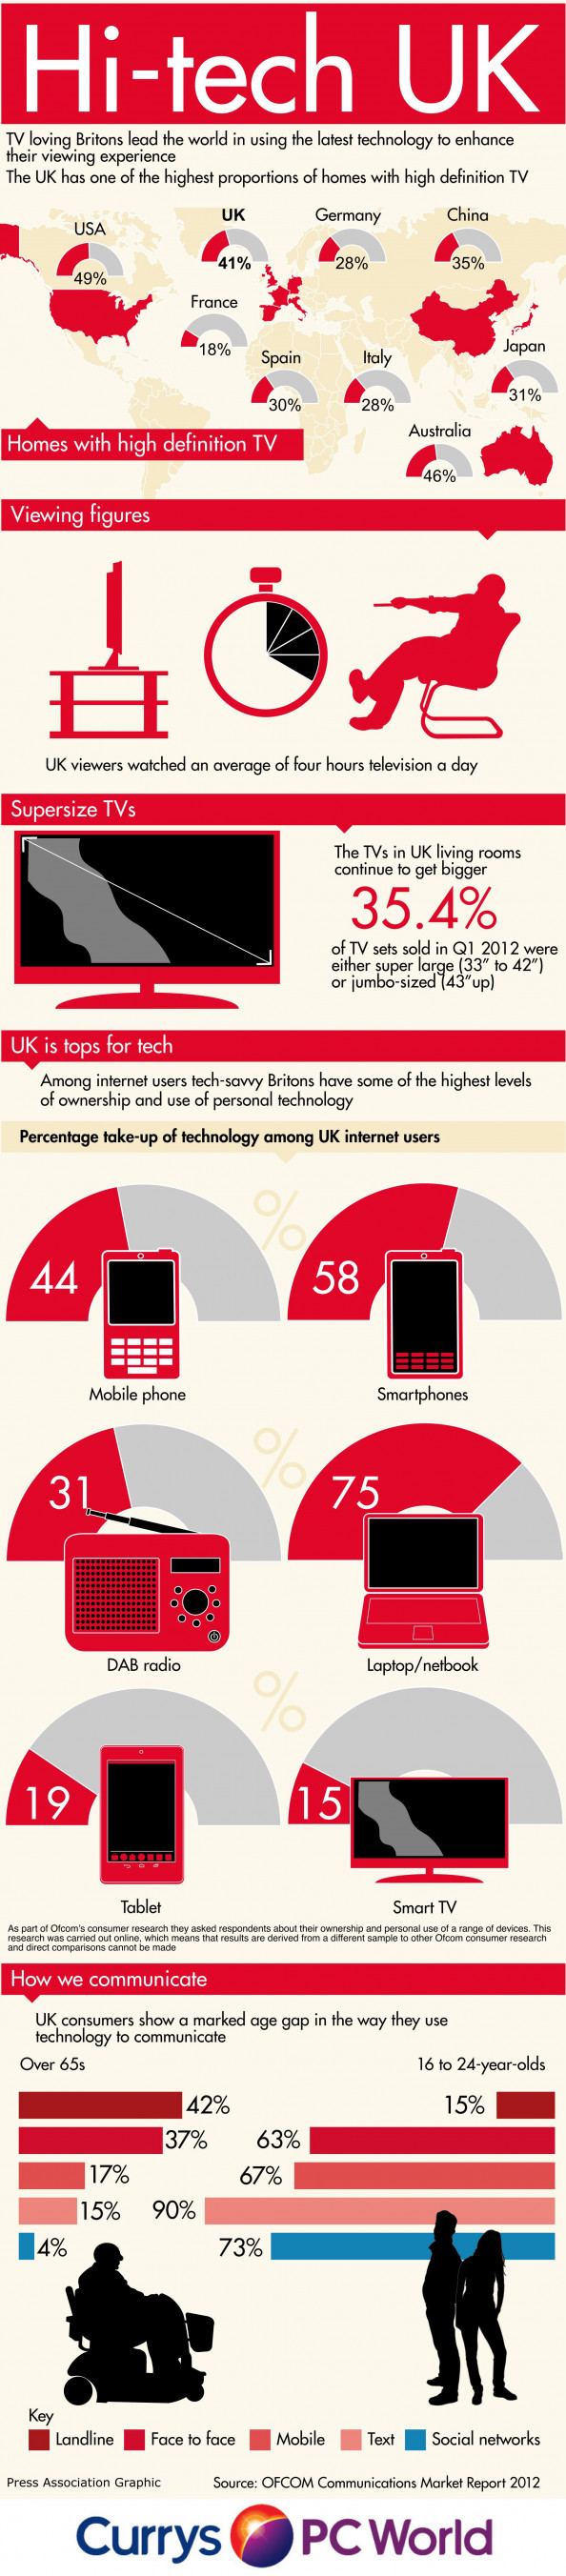 Hi-tech UK Infographic